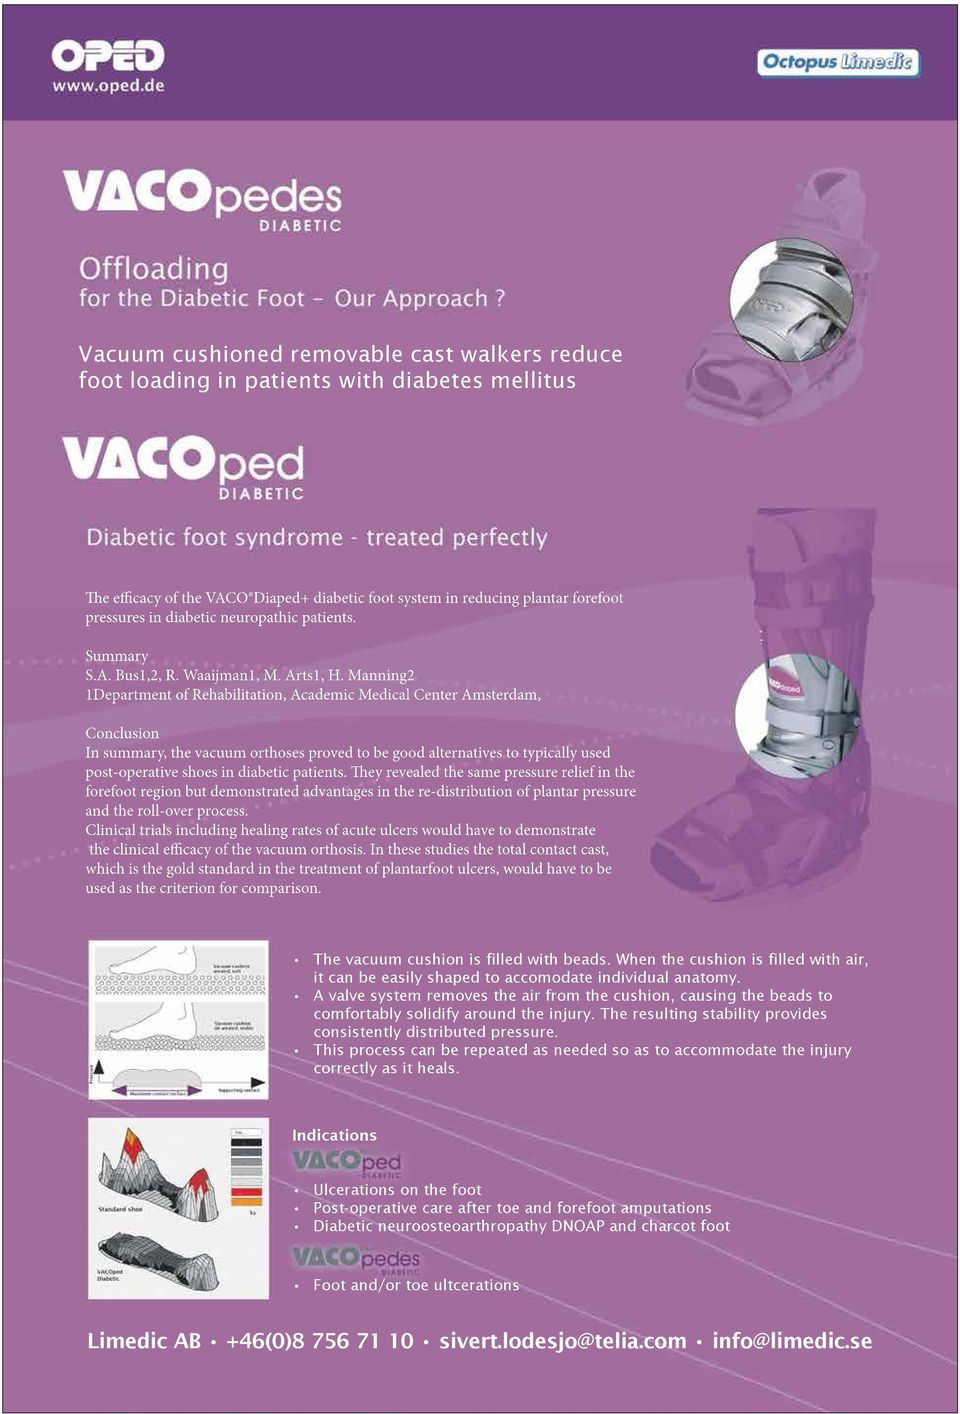 Manning2 1Department of Rehabilitation, Academic Medical Center Amsterdam, Conclusion In summary, the vacuum orthoses proved to be good alternatives to typically used post-operative shoes in diabetic